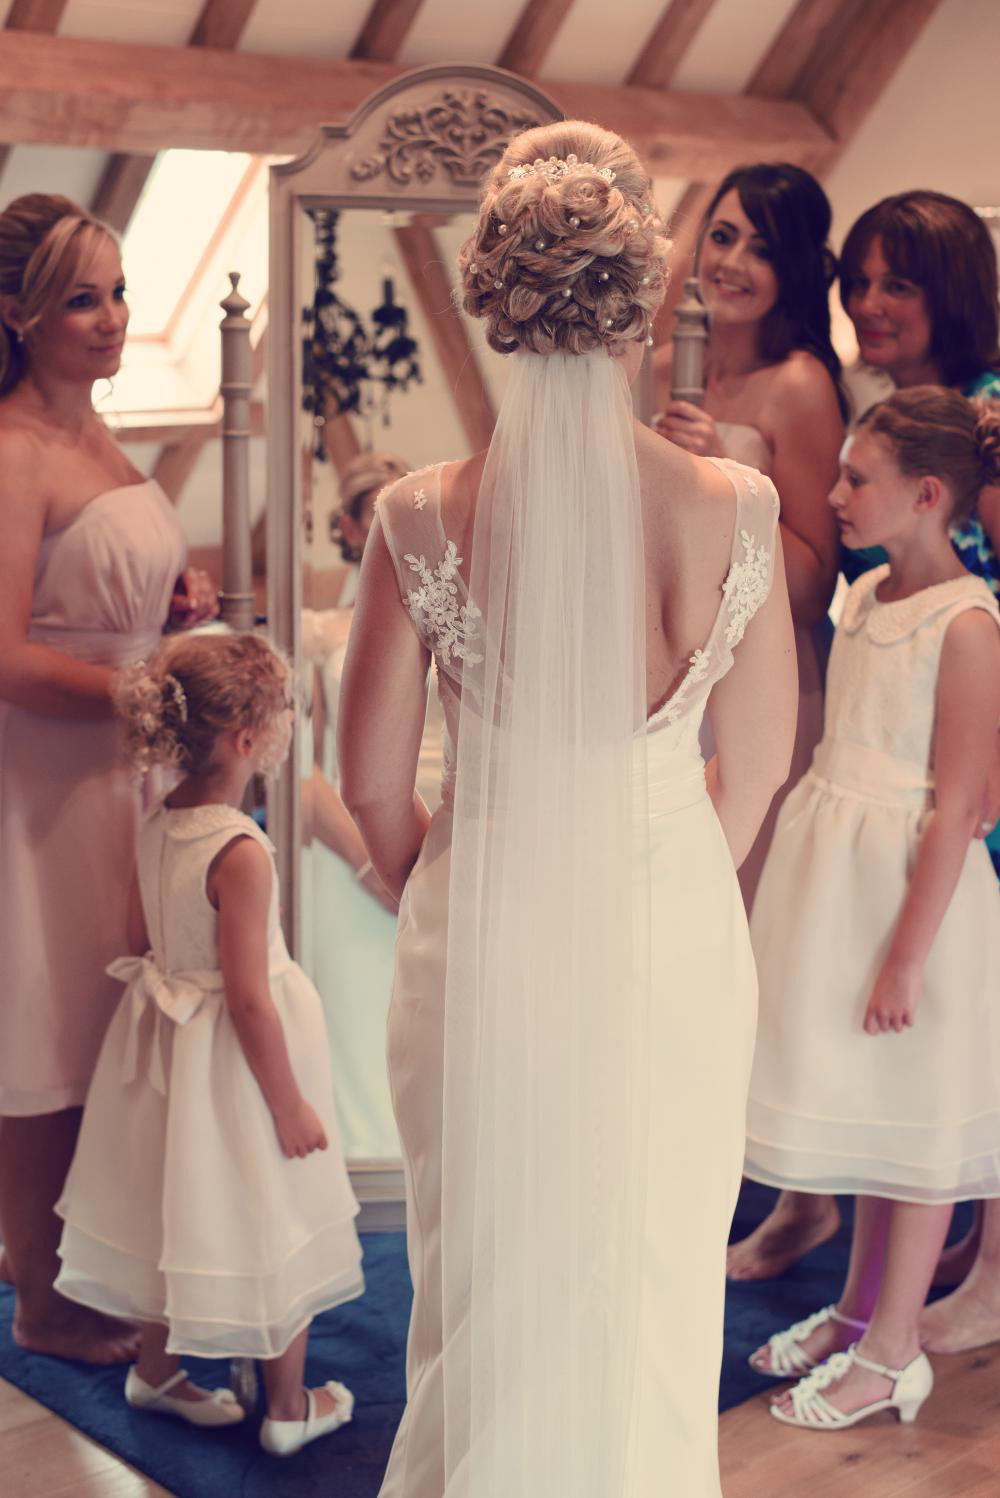 The Girls Admiring the Beautiful Bride